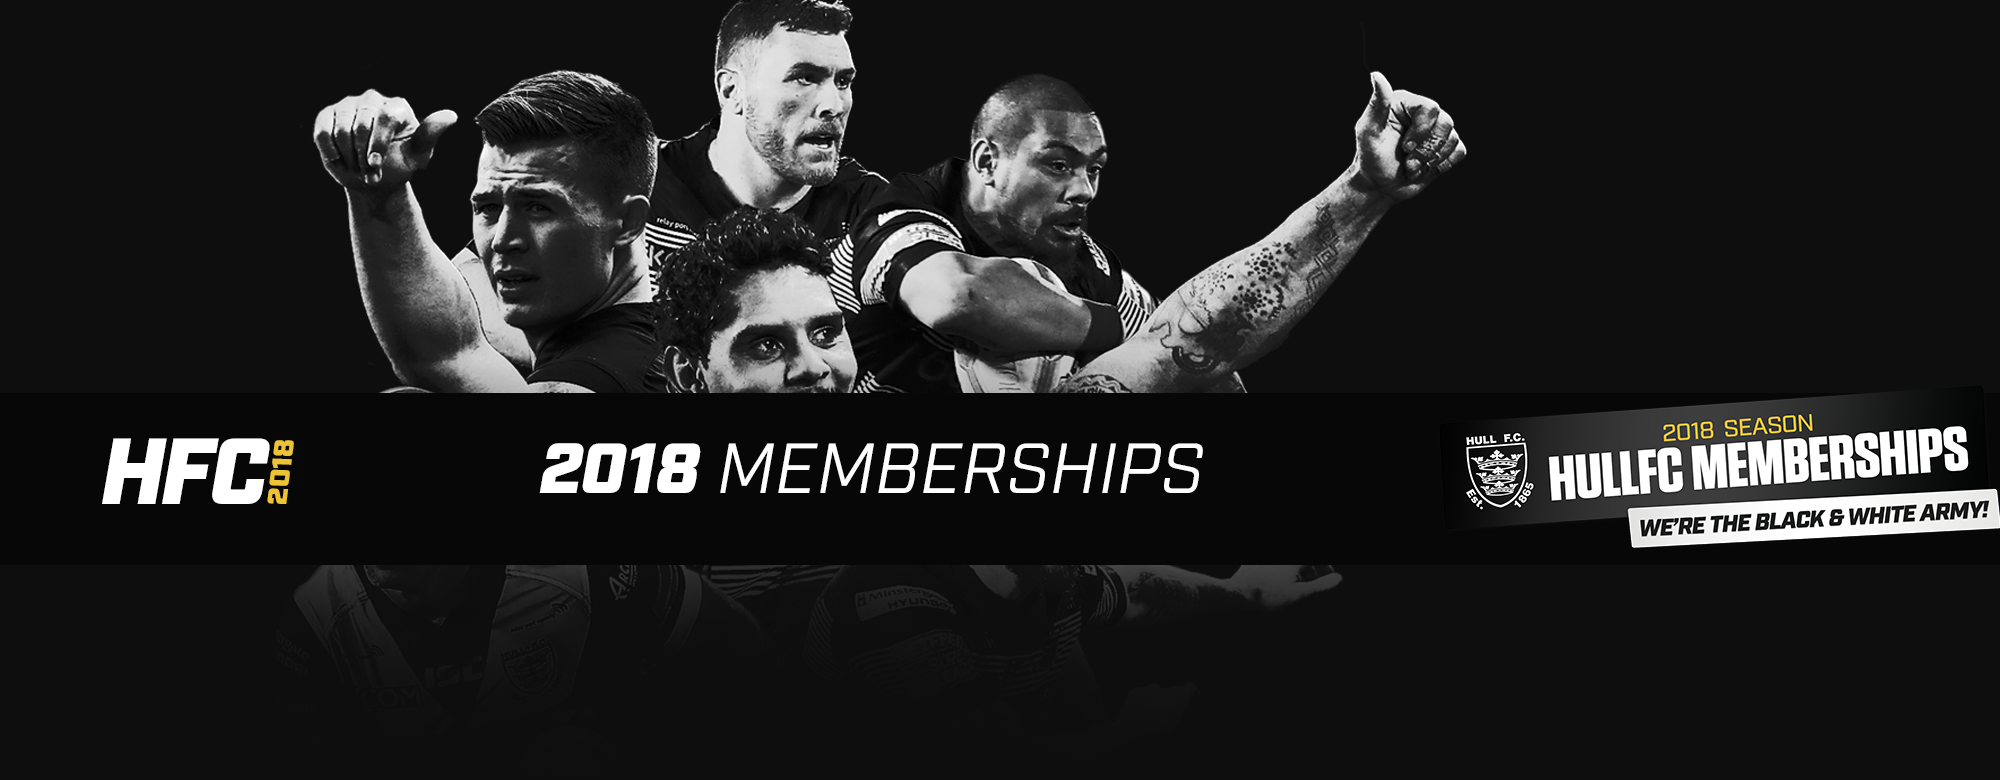 2018 Memberships on Sale Now!